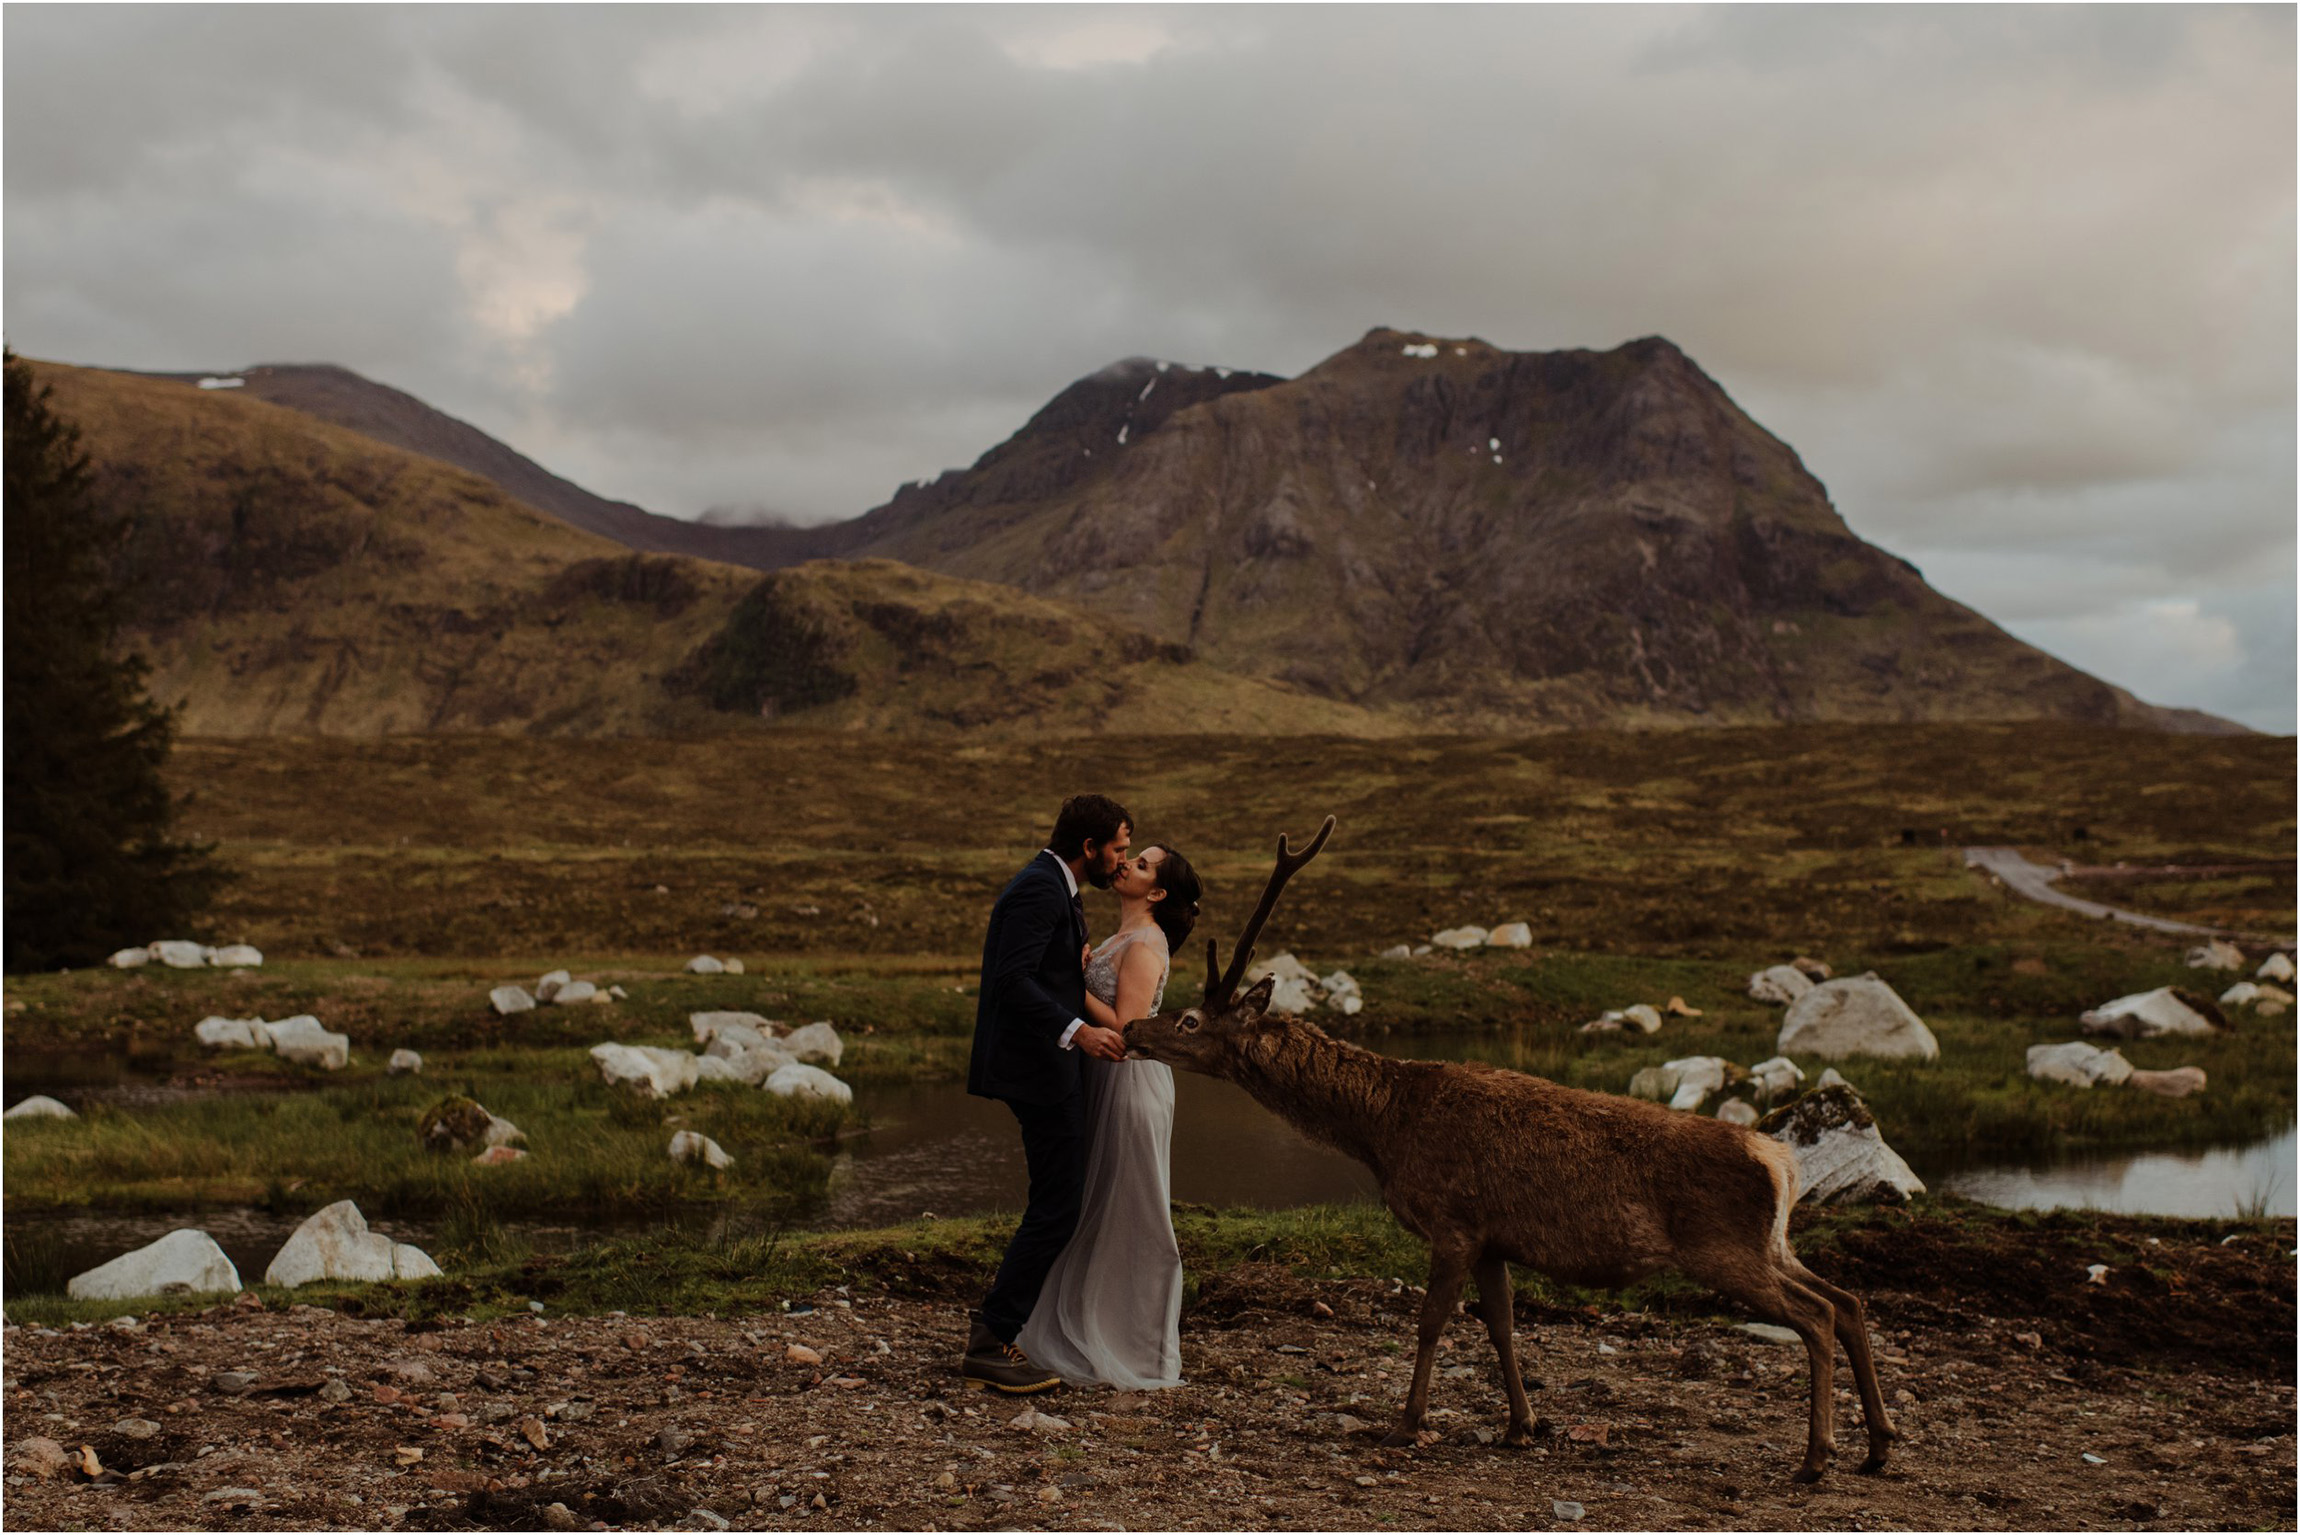 Scotland Wedding Photographer_Glencoe_Melanie_Jim_Anniversary_013.jpg